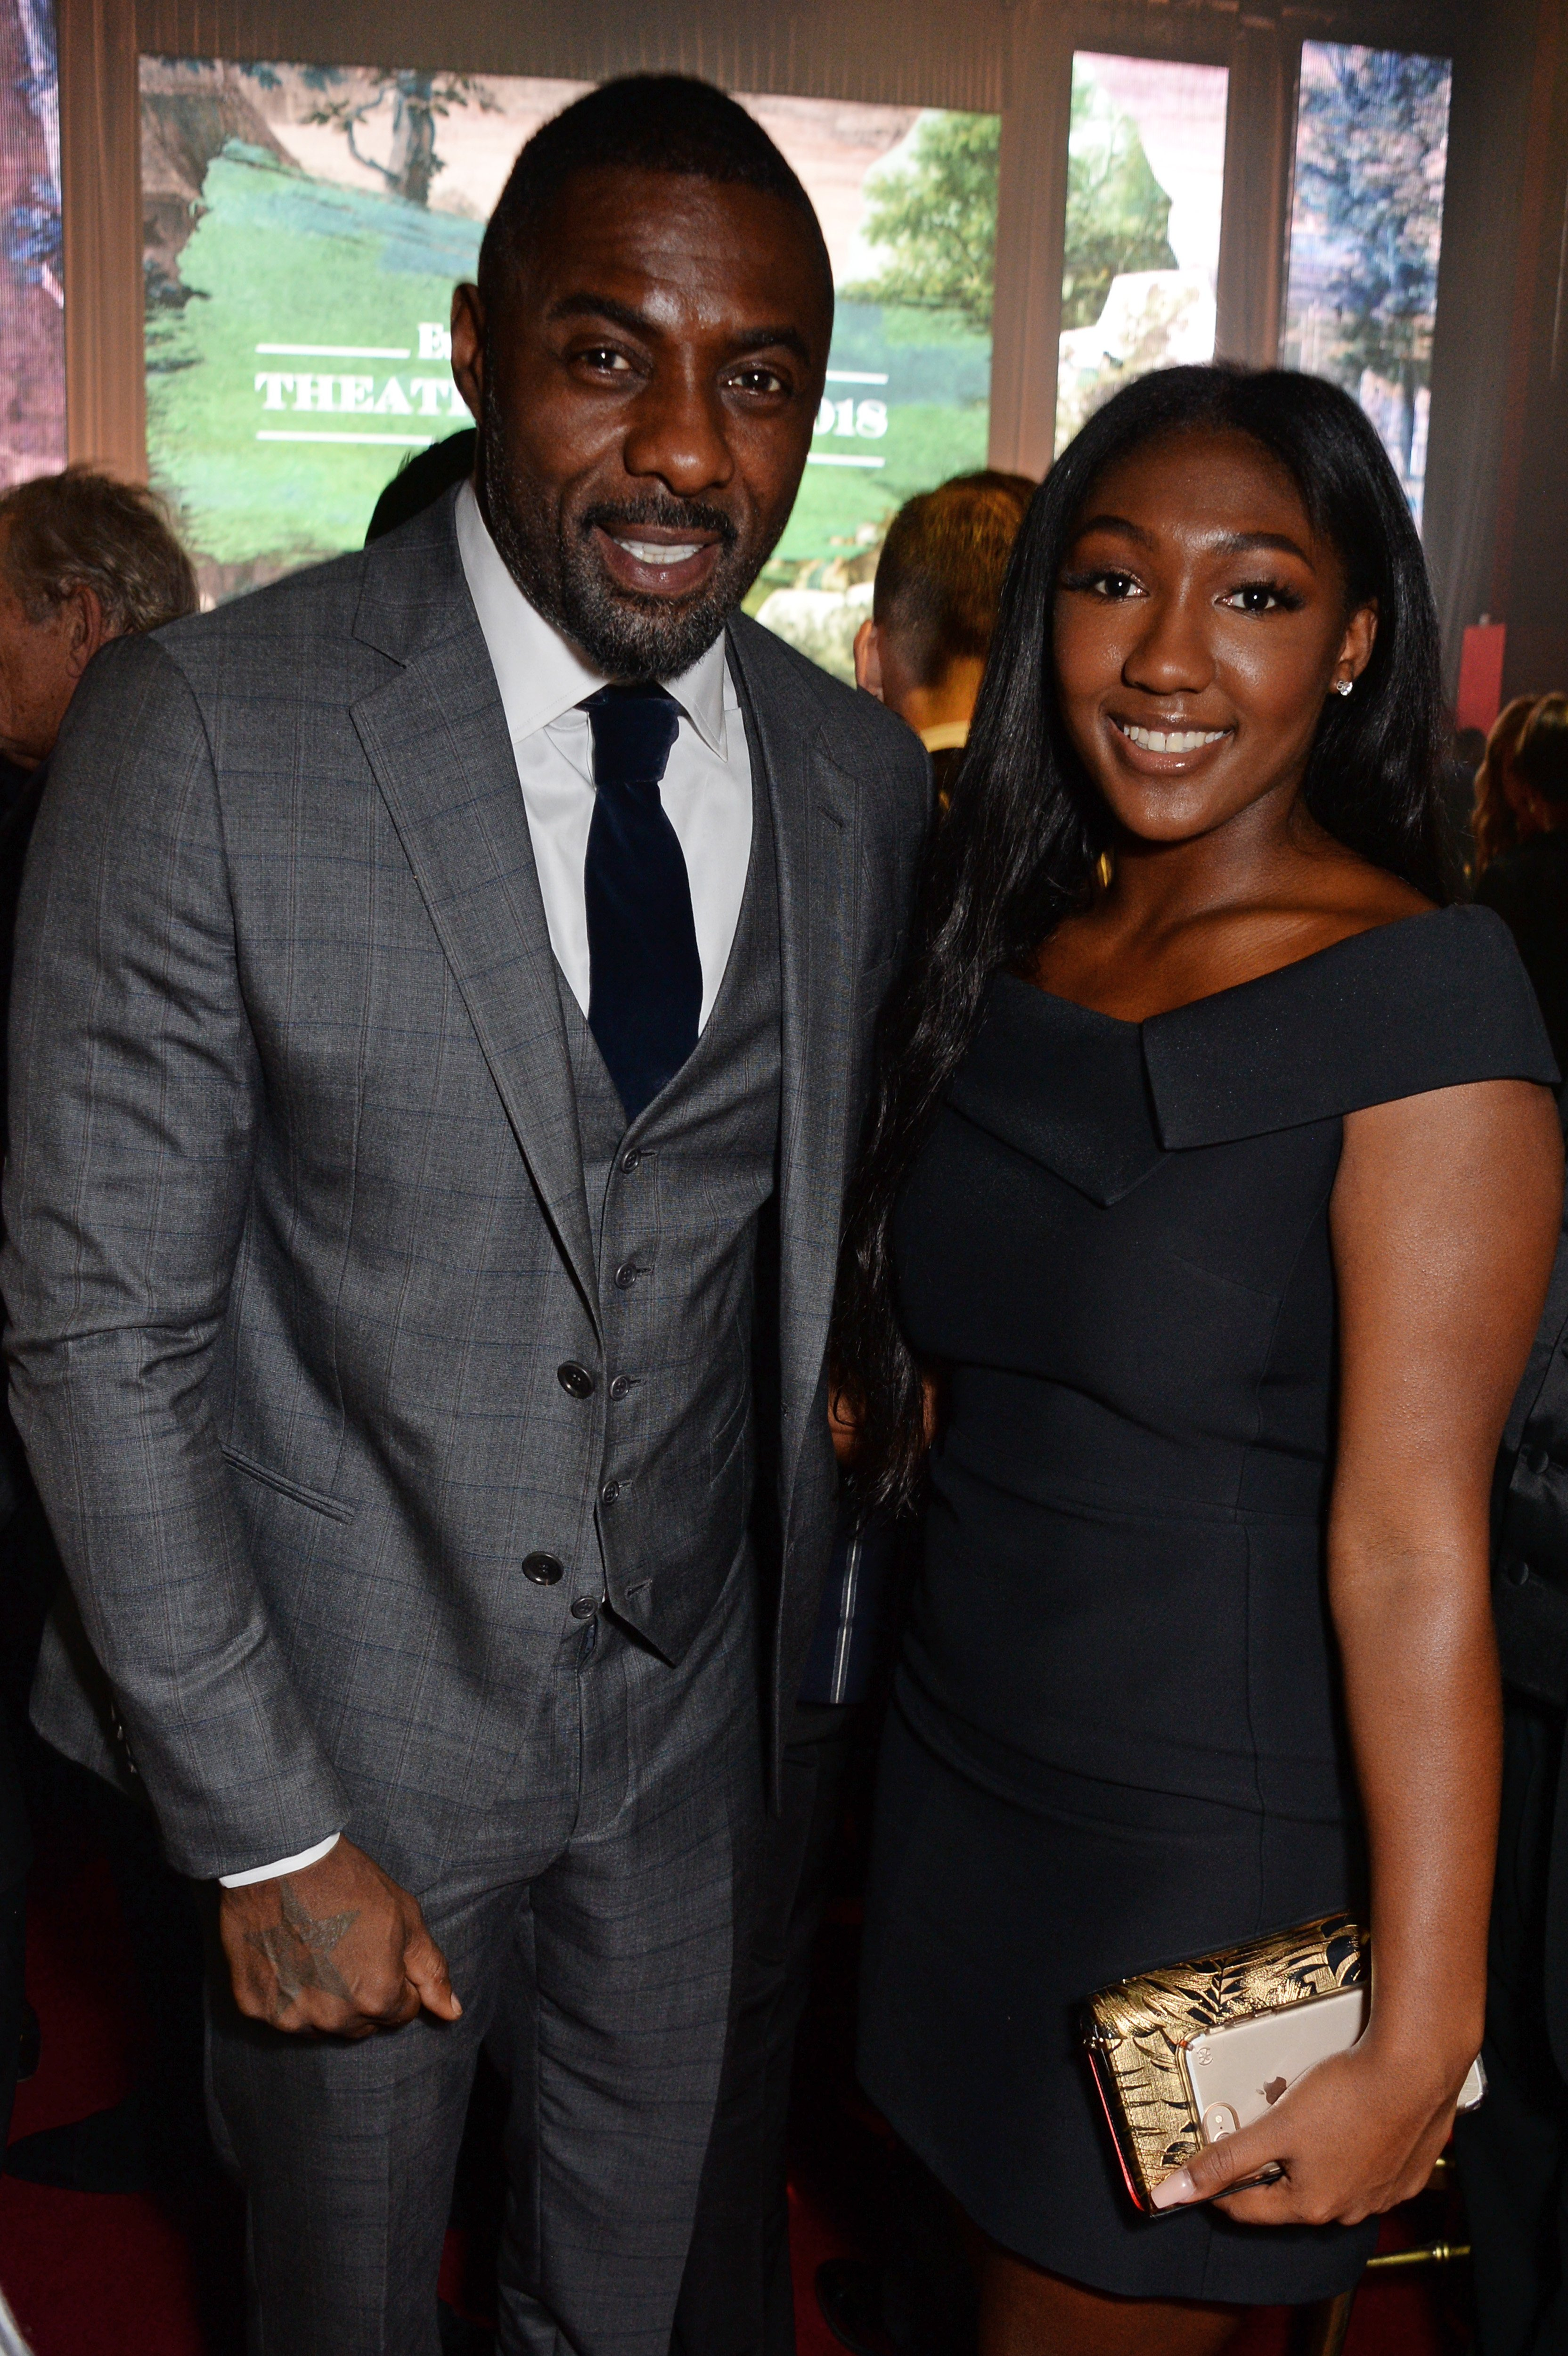 Idris Elba and Isan Elba attend The 64th Evening Standard Theatre Awards on November 18, 2018, in London, England. | Source: Getty Images.